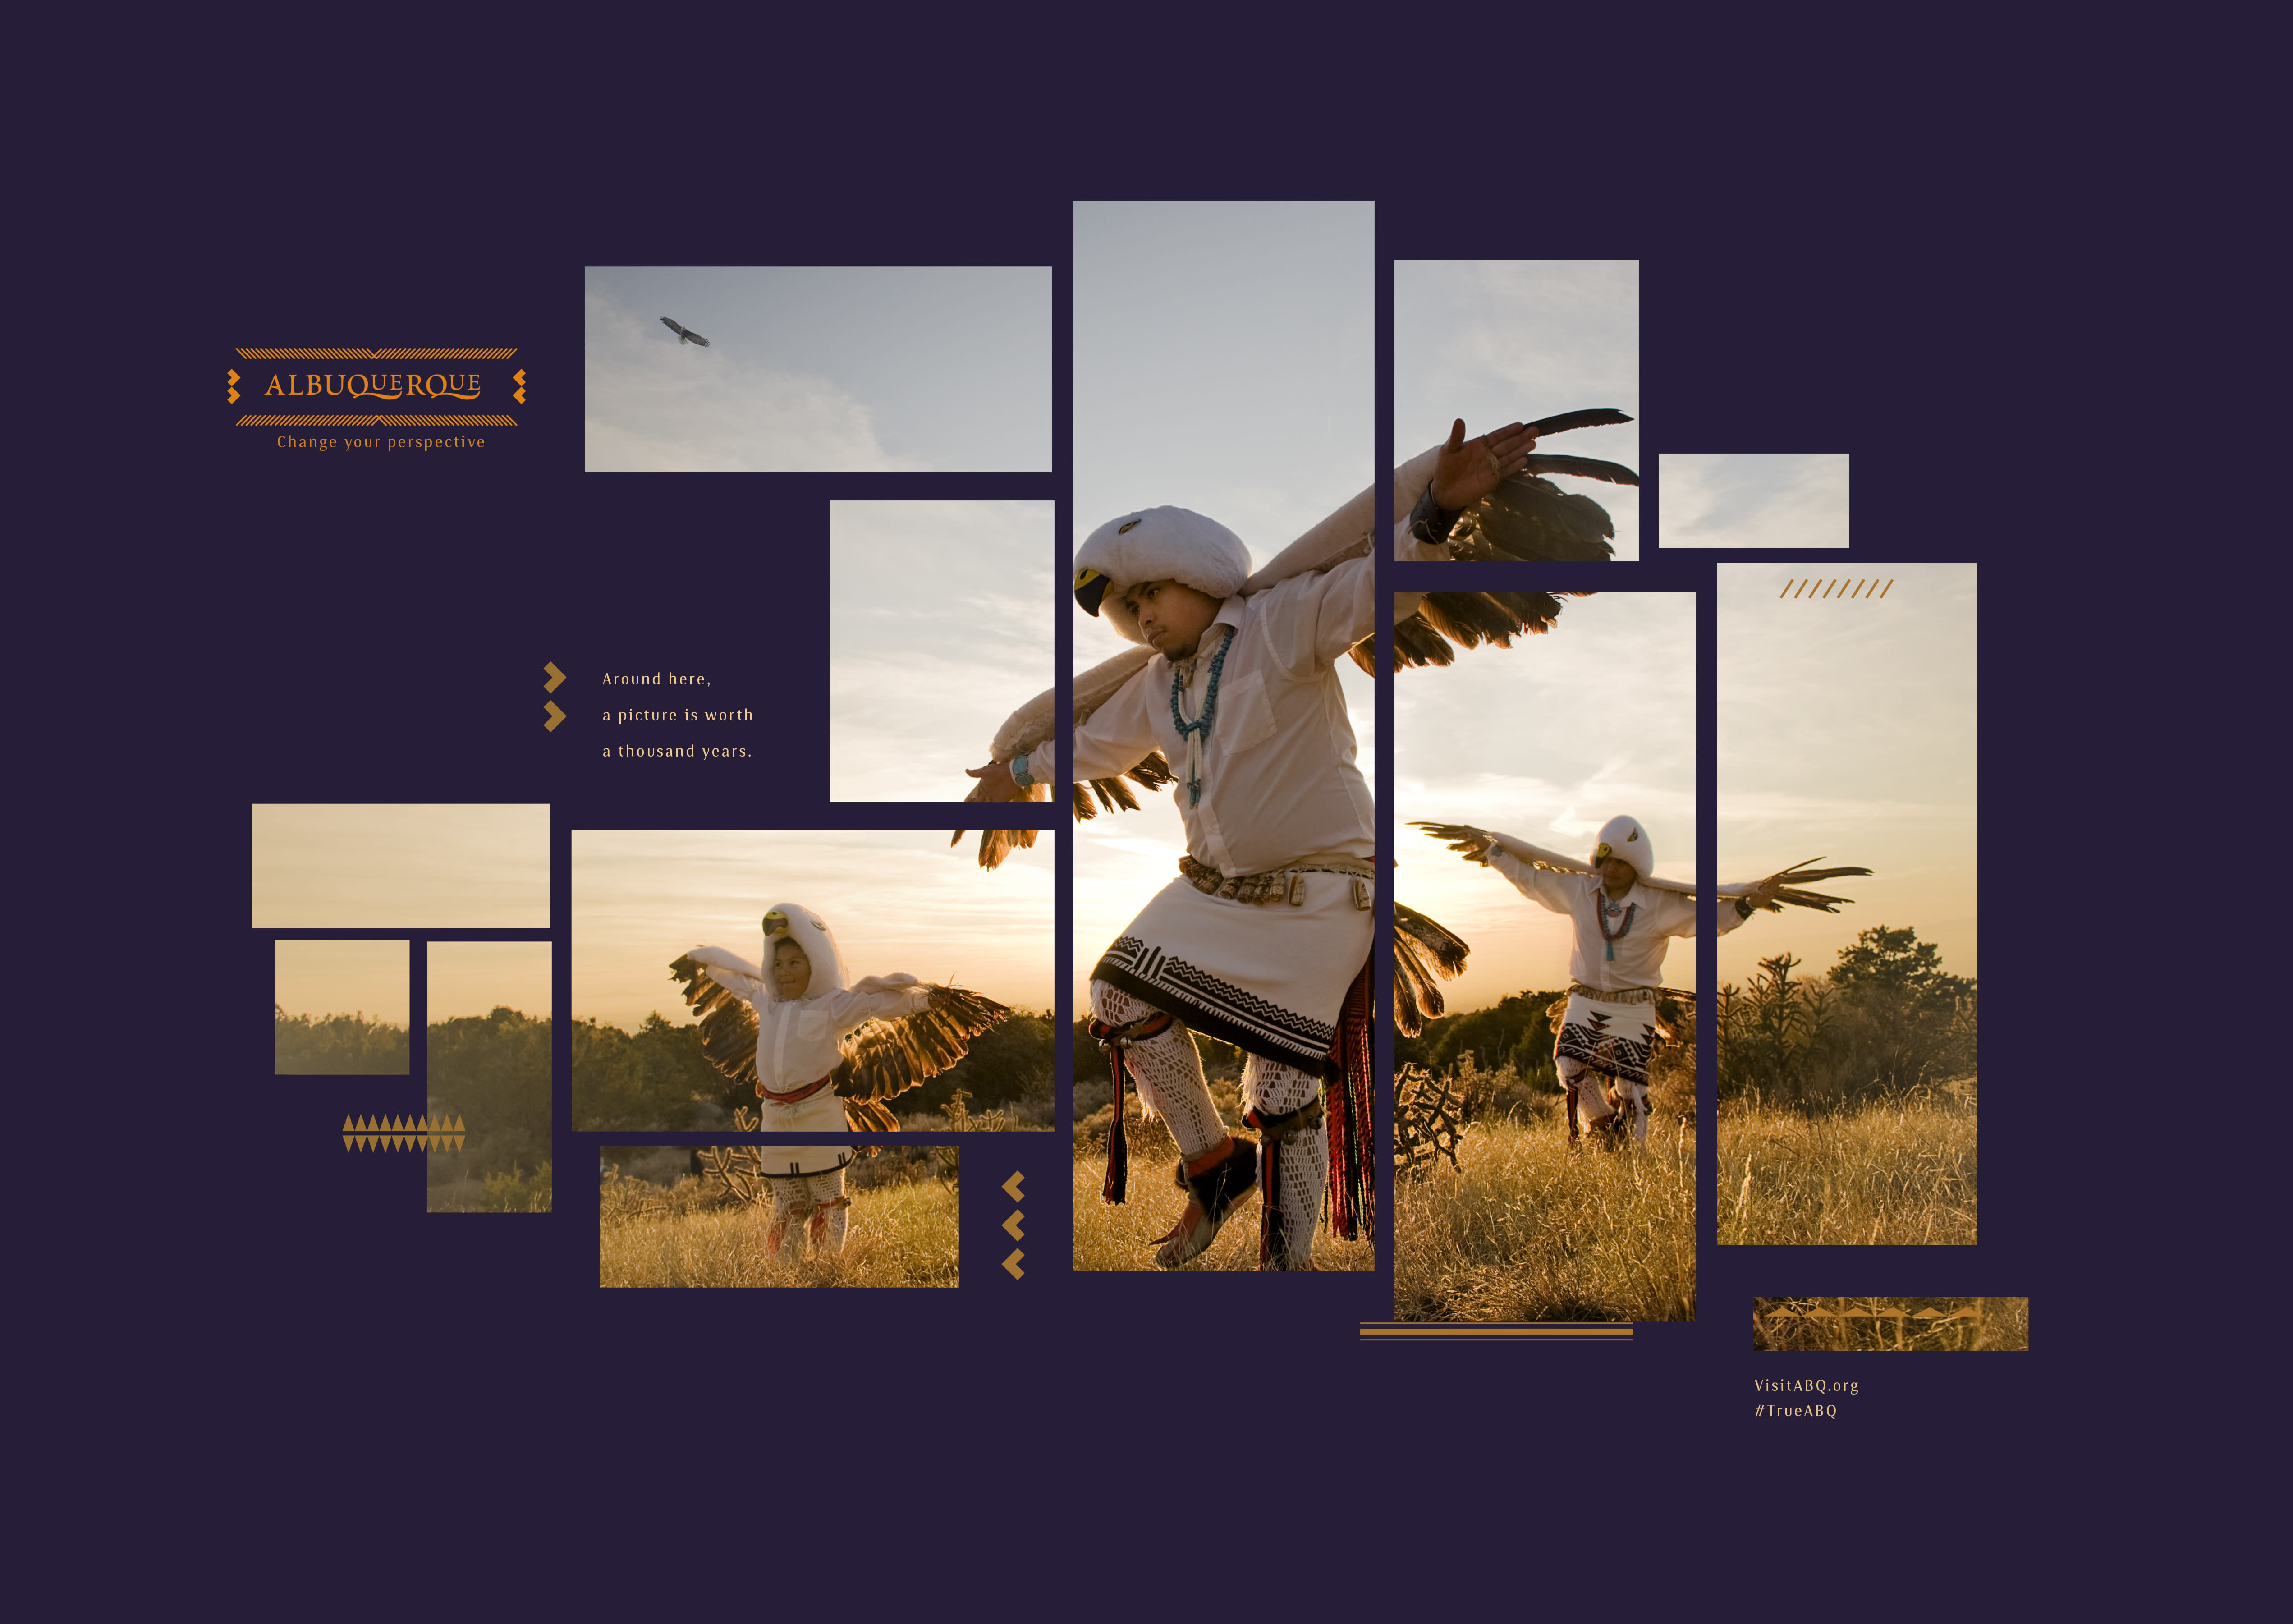 Native American dancers from Albuquerque brand refresh